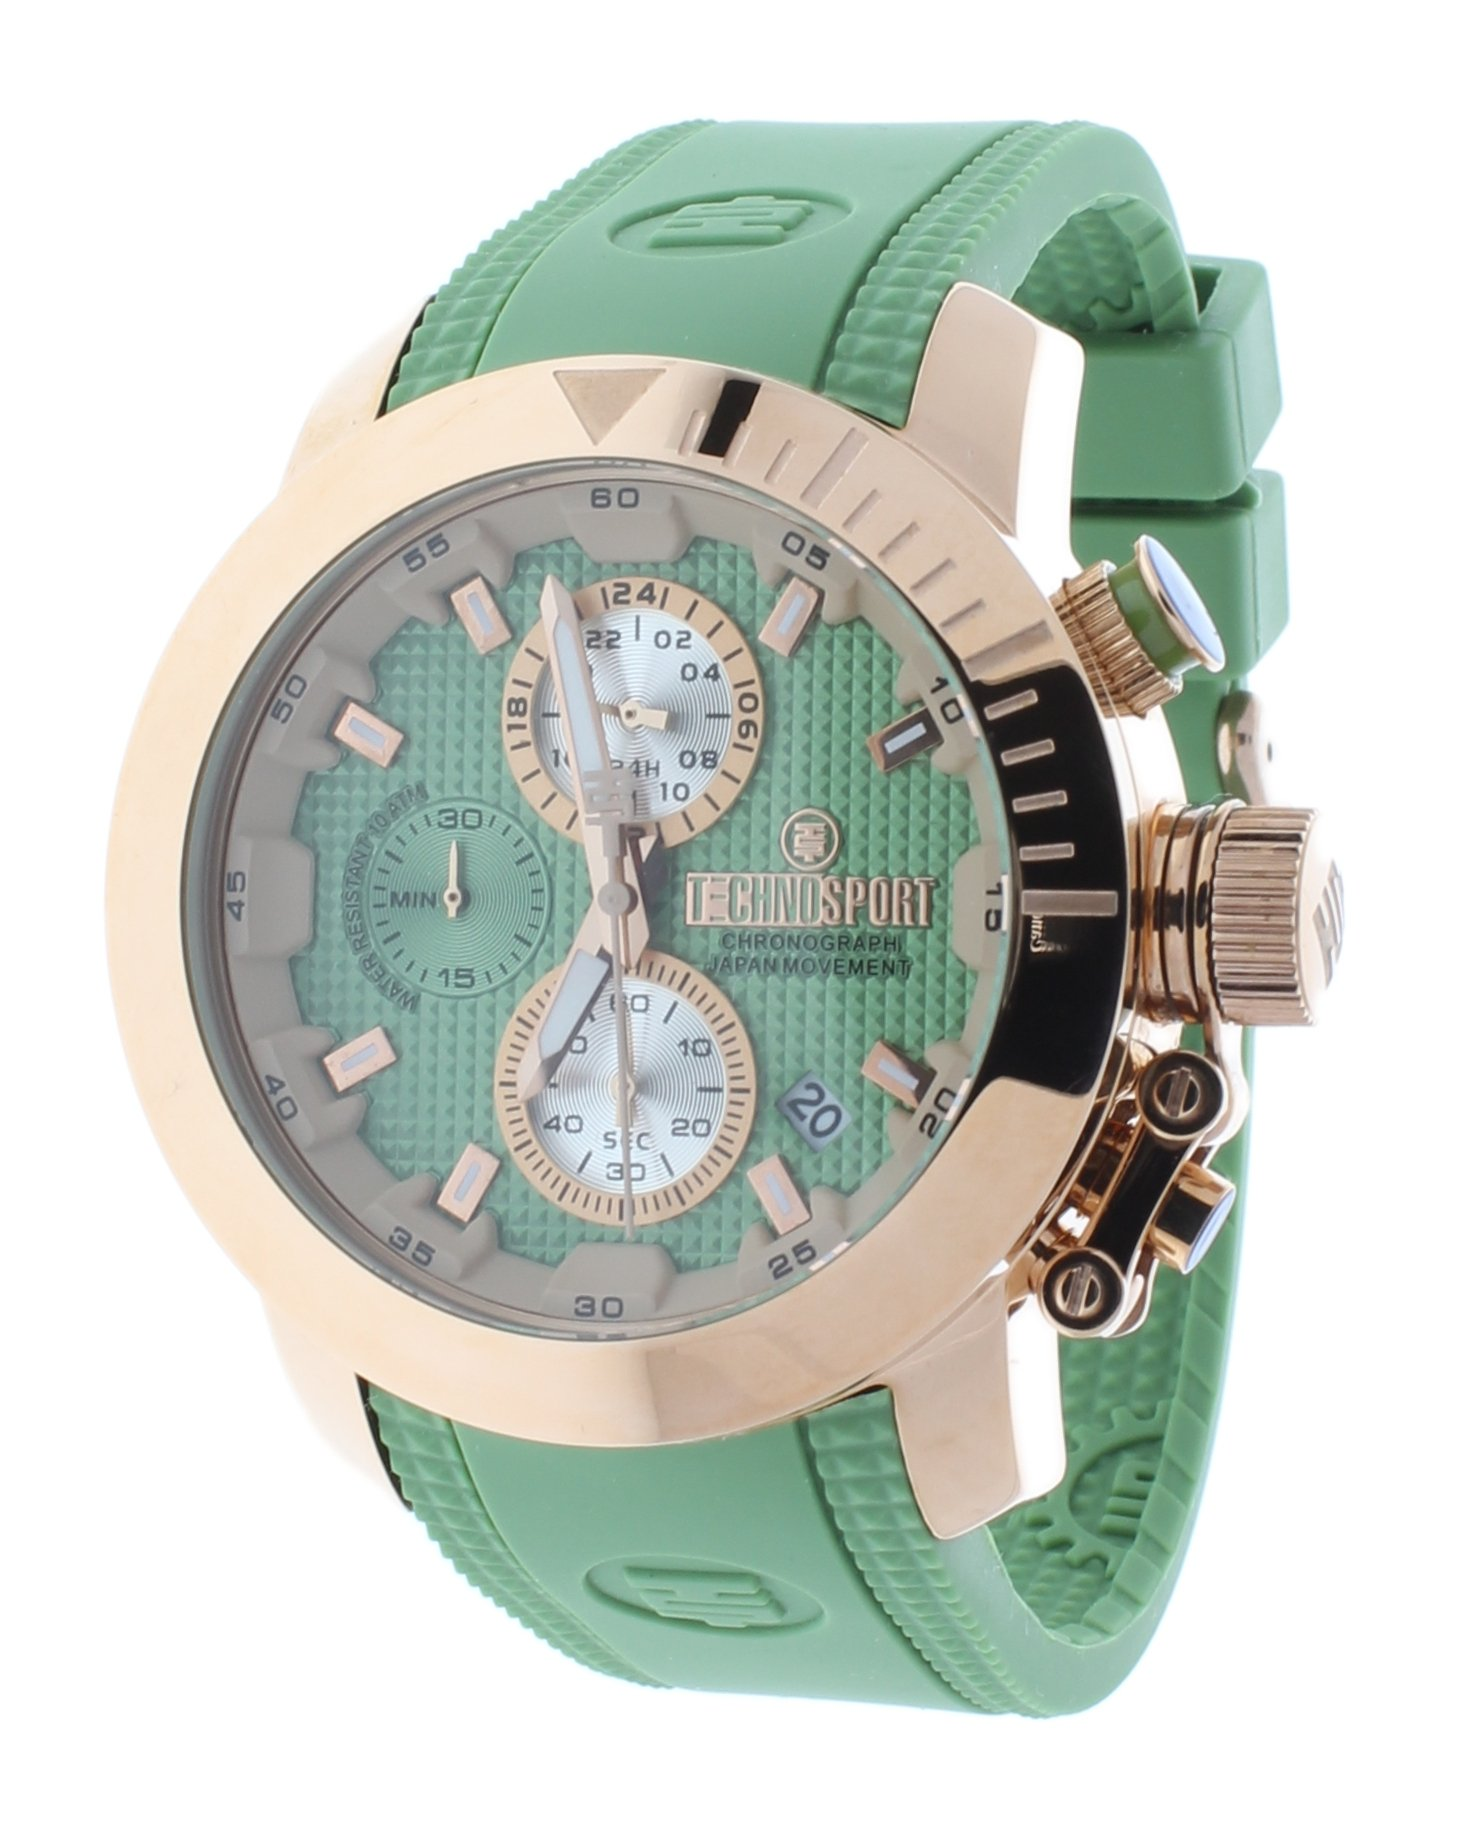 Technosport TS-231-6 Unisex Watch Rose Gold And Light Green Chronograph Function Silicone Strap